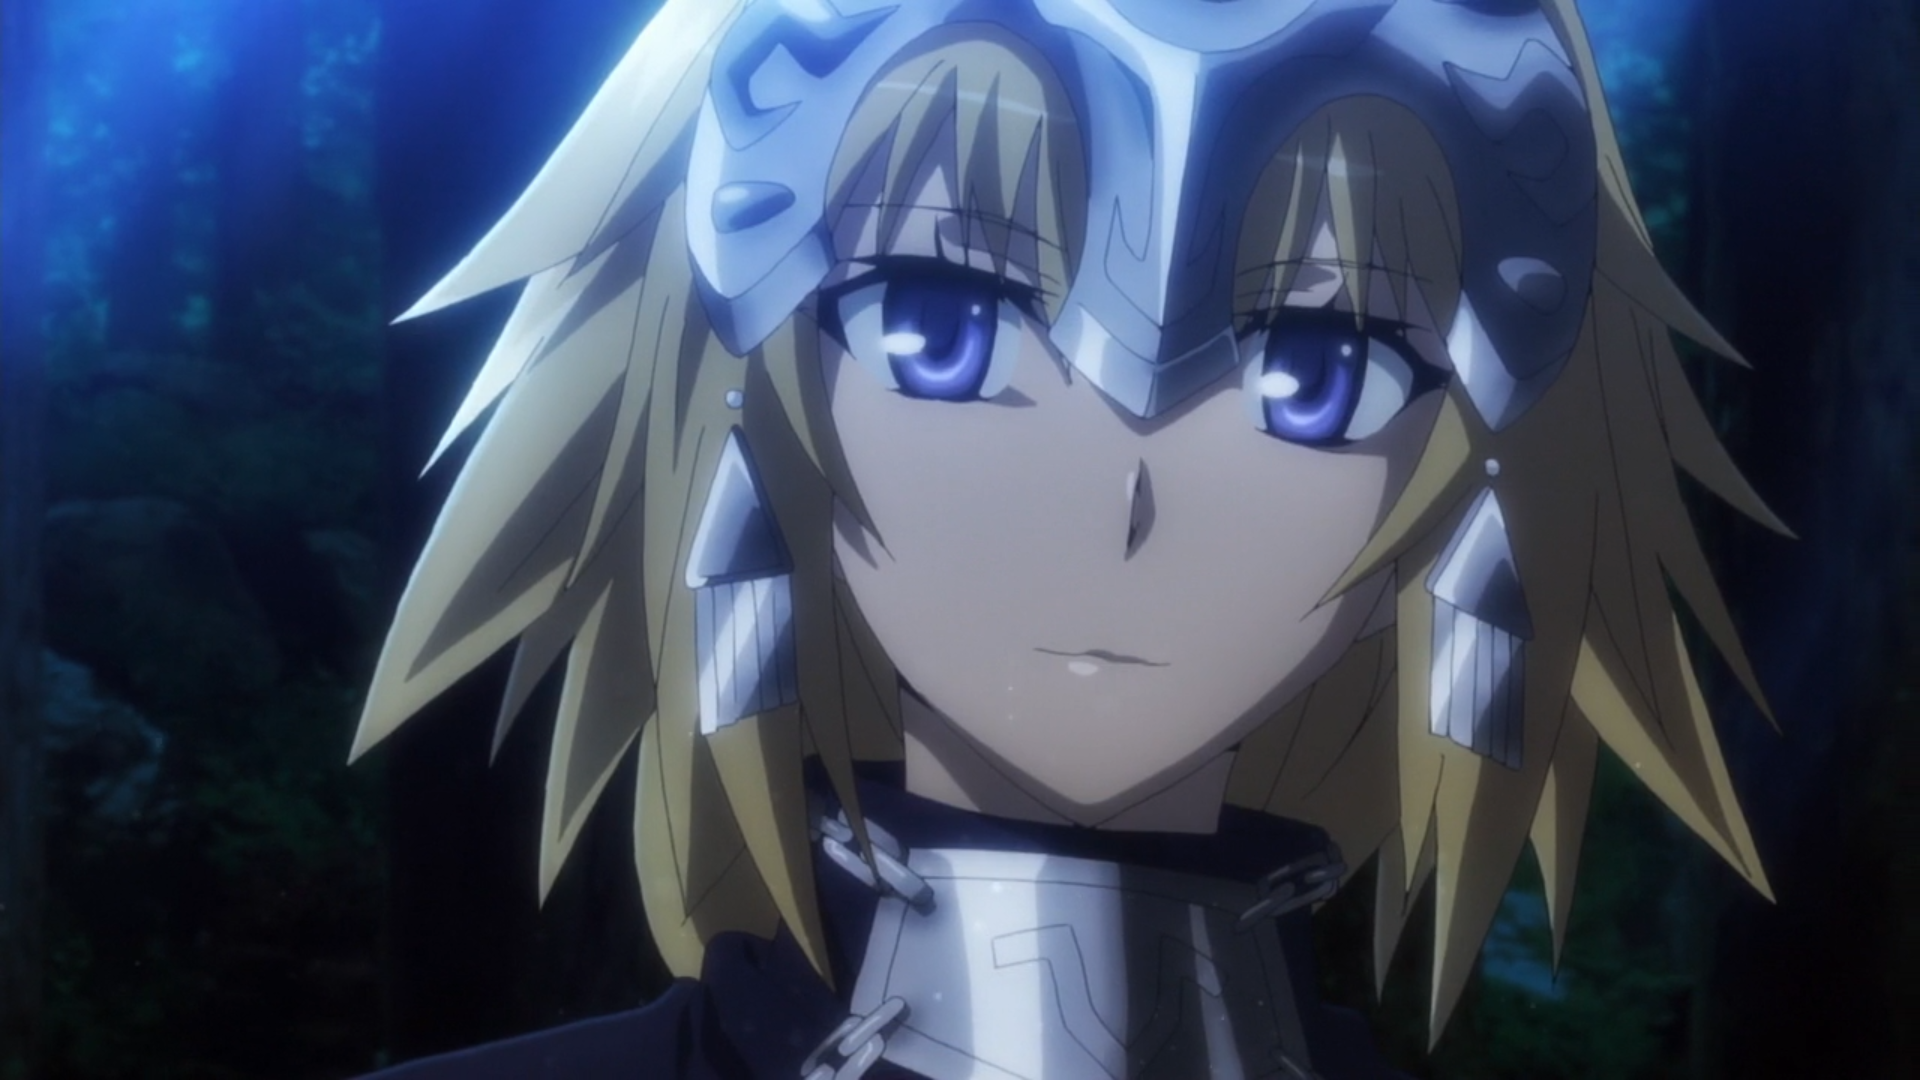 Fate Apocrypha Goes All In On Action And Loses The Story In The Gamble